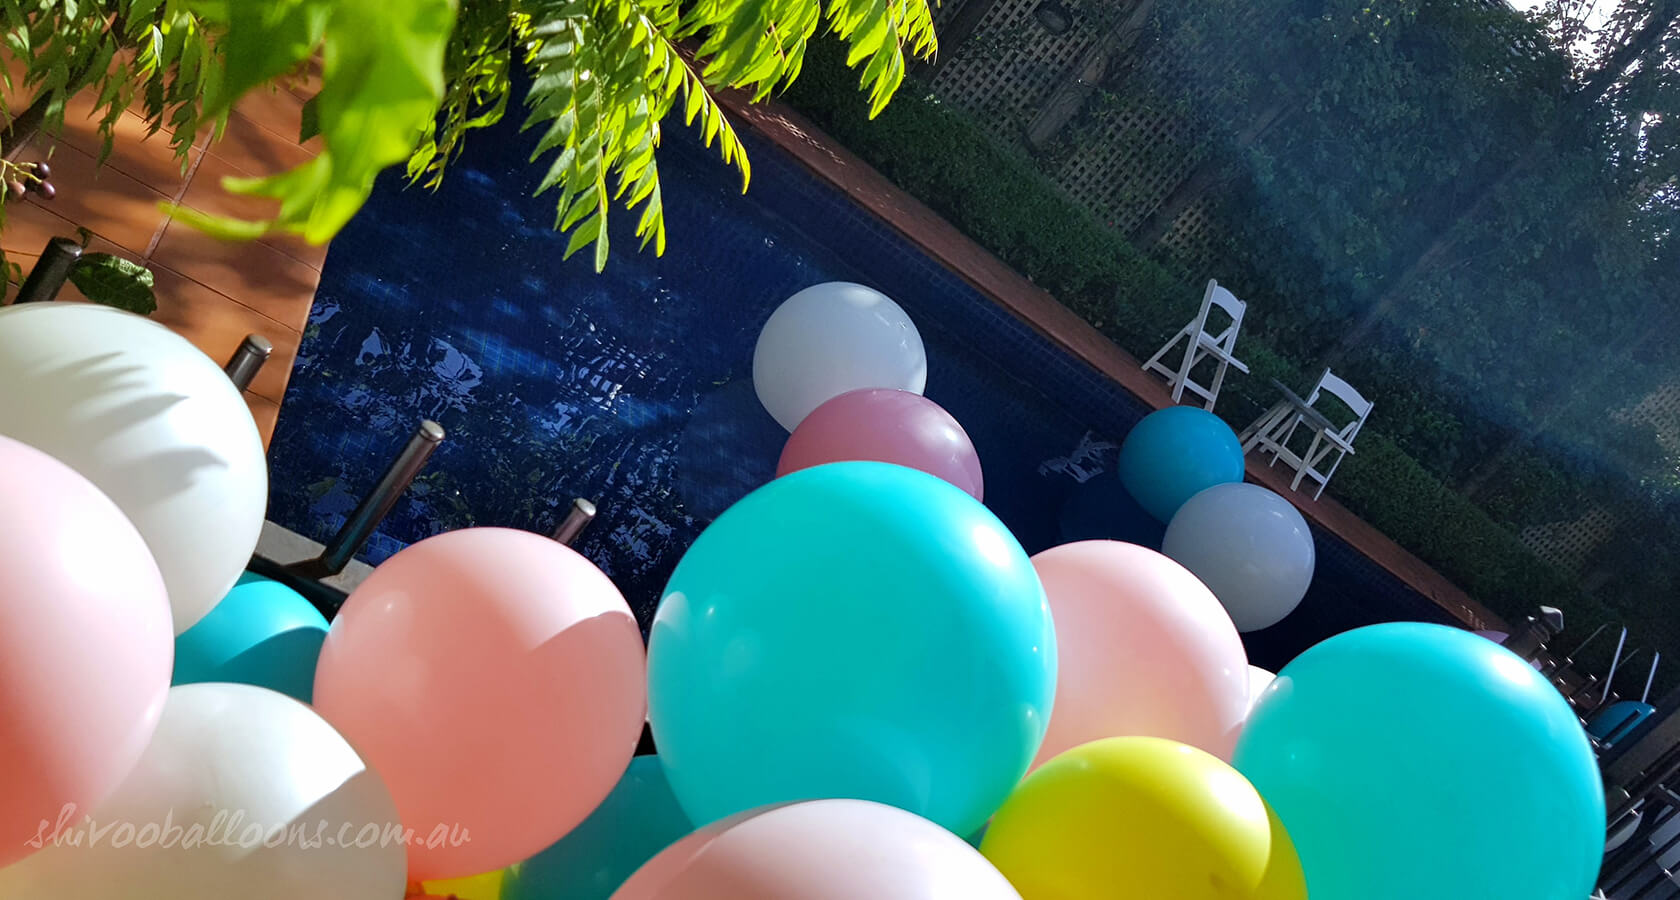 See Our Events! - image CE-53 on https://shivooballoons.com.au